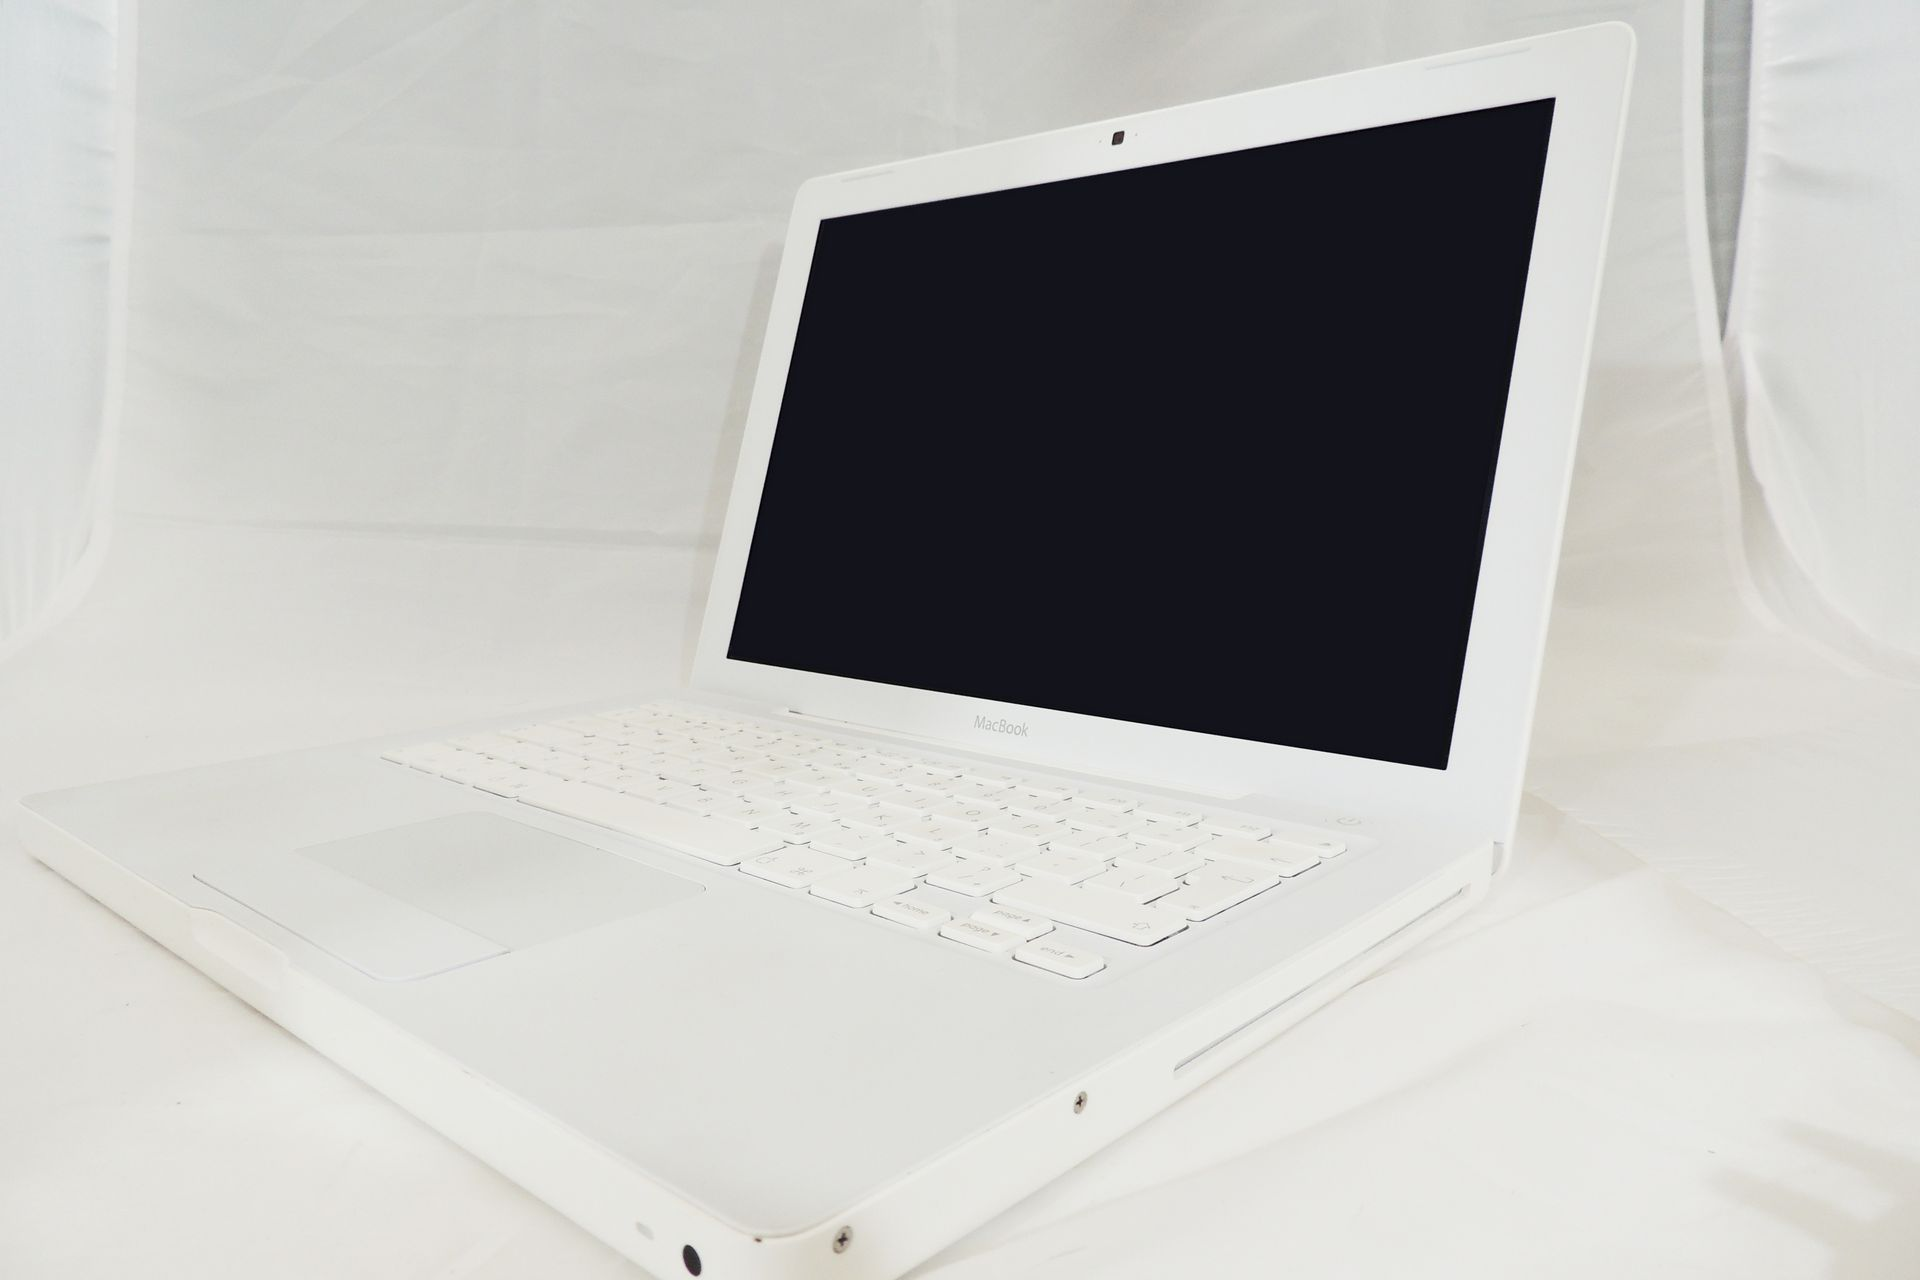 APPLE POWERBOOK 4.1 MODEL A1181 (2008)